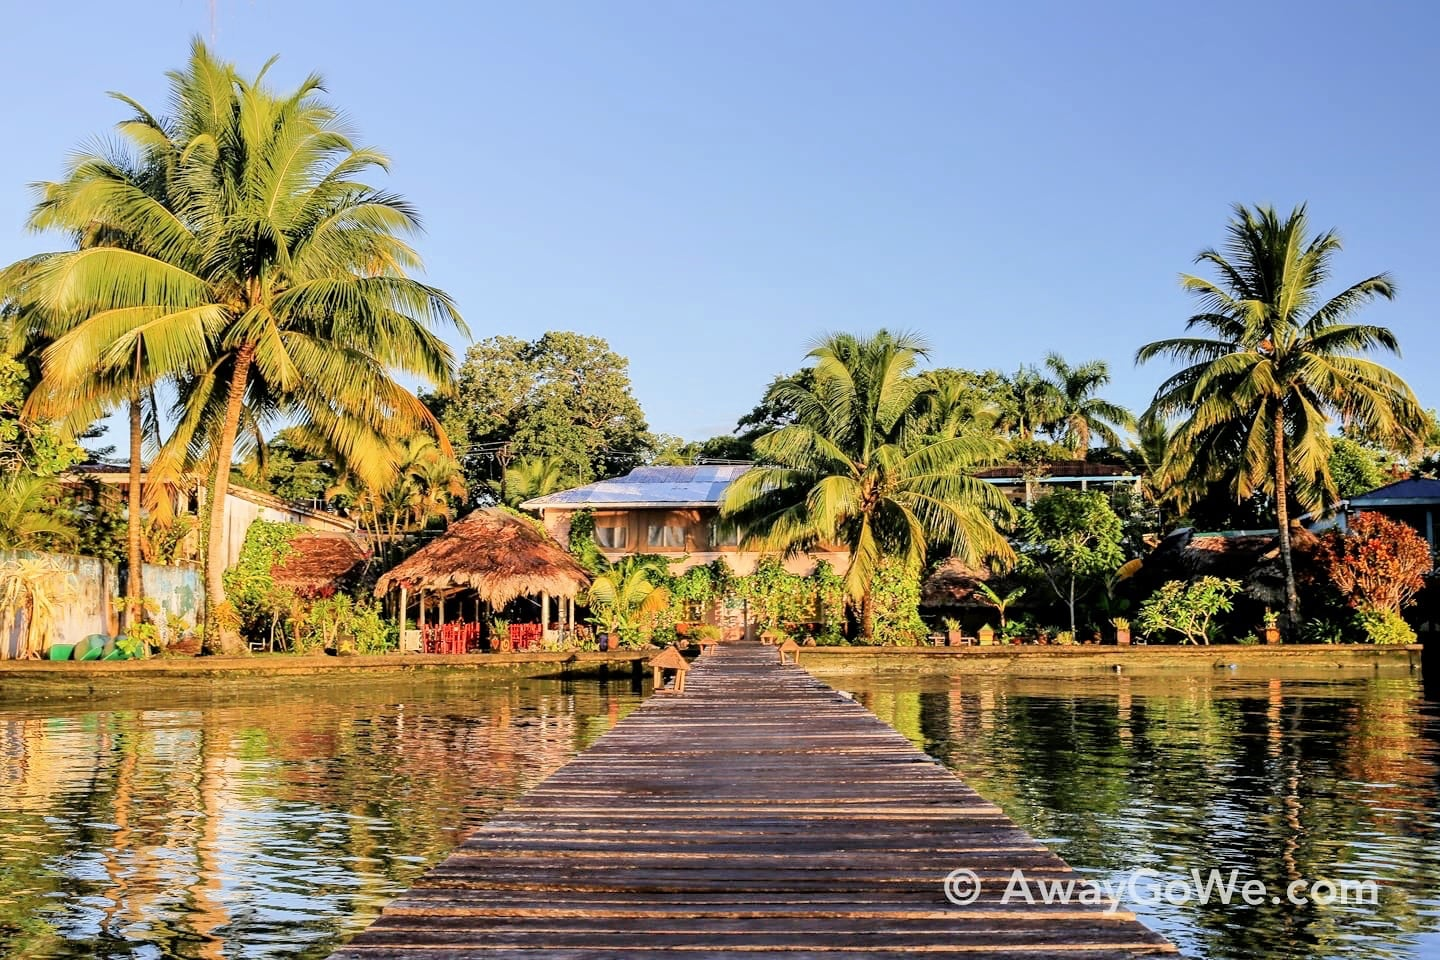 dock on water with palm trees